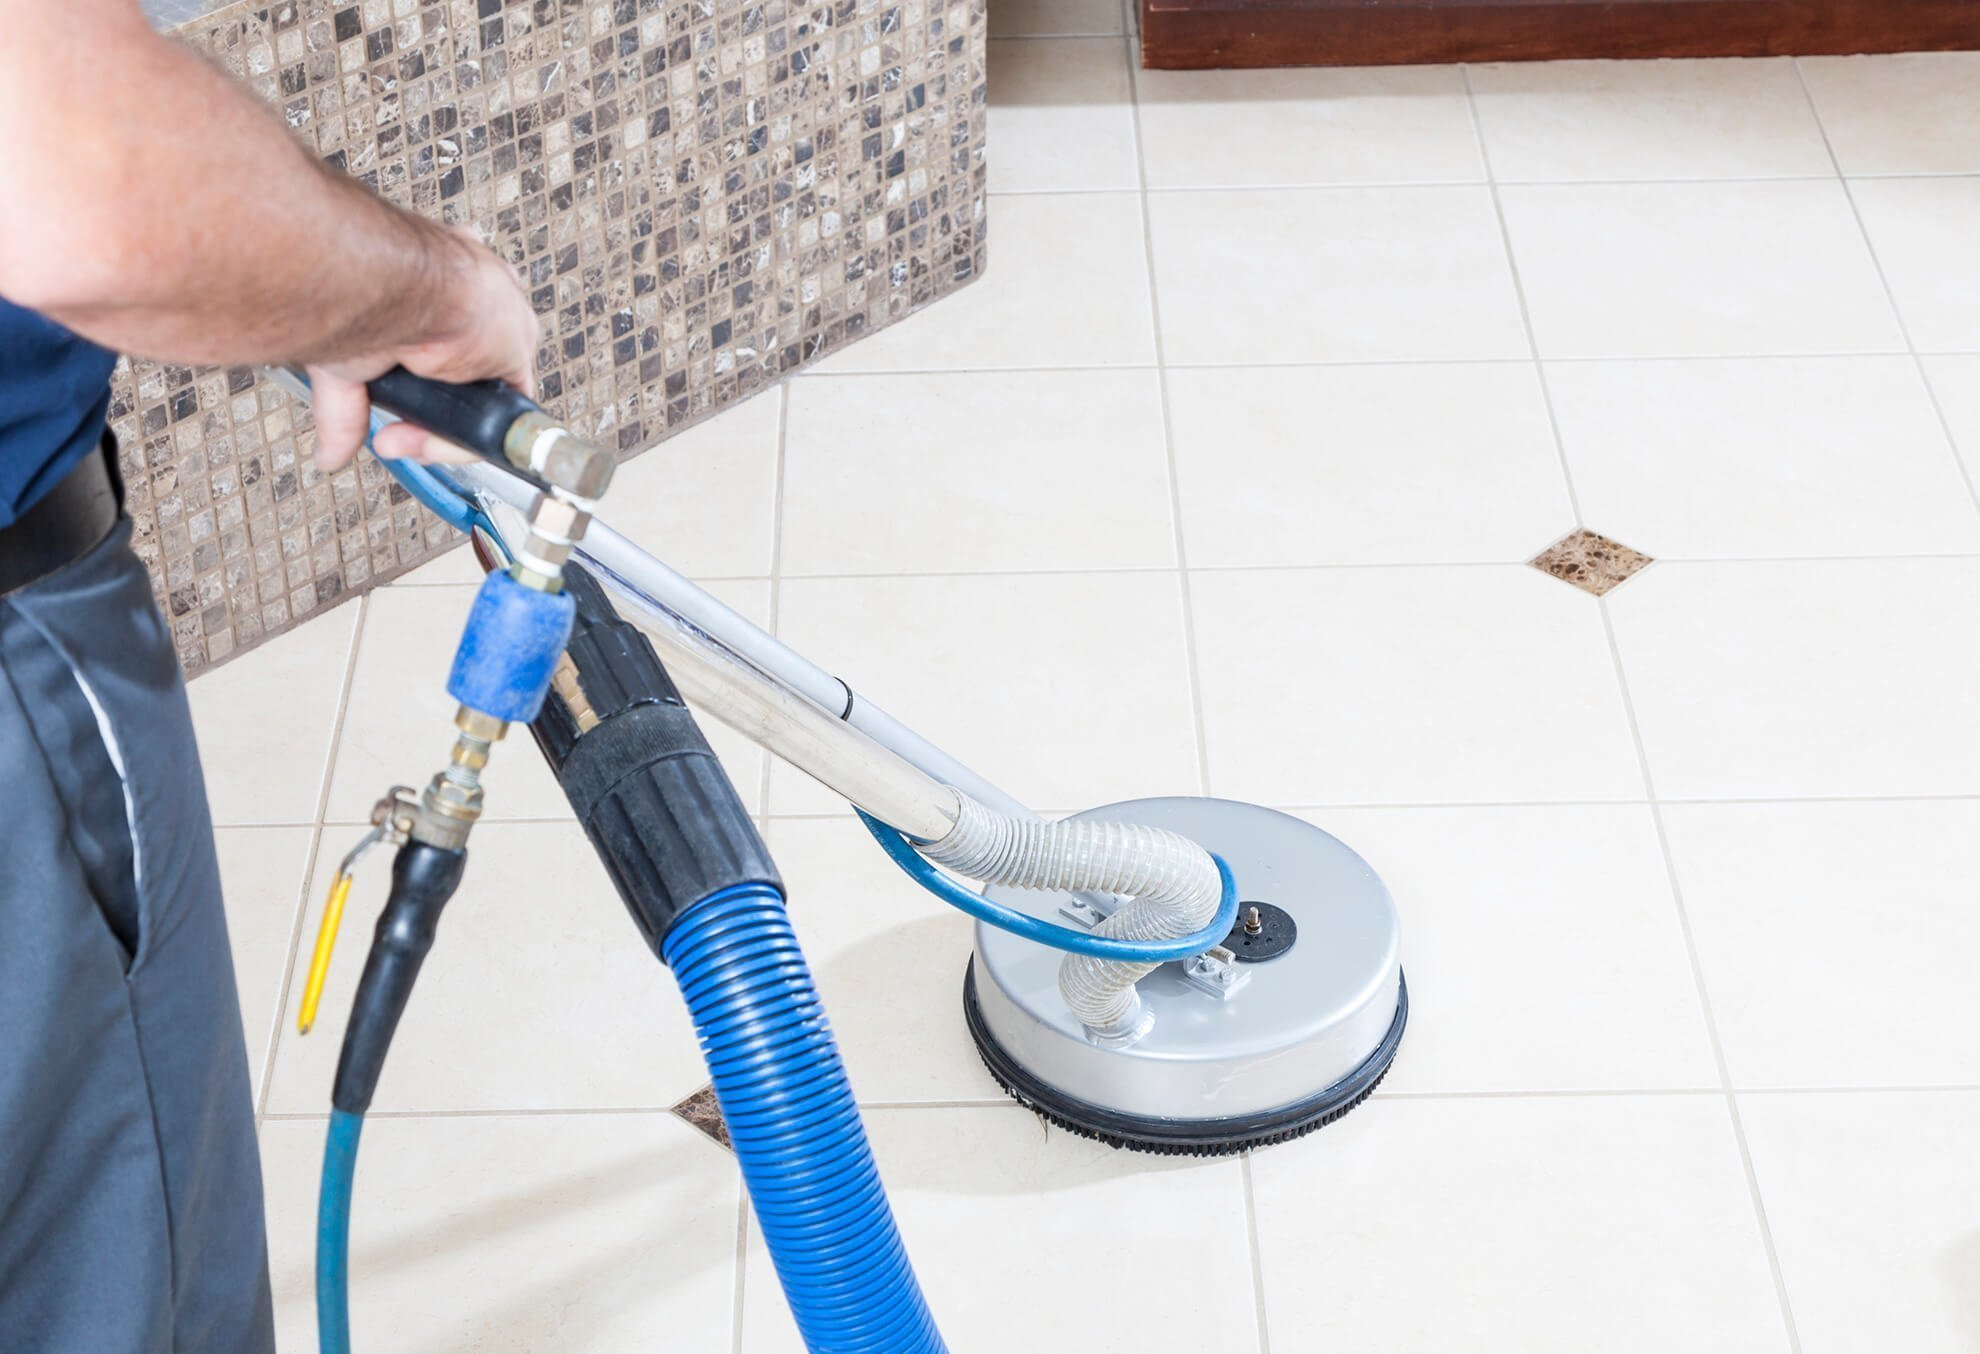 Tiles and Grout Cleaning Services in Melbourne